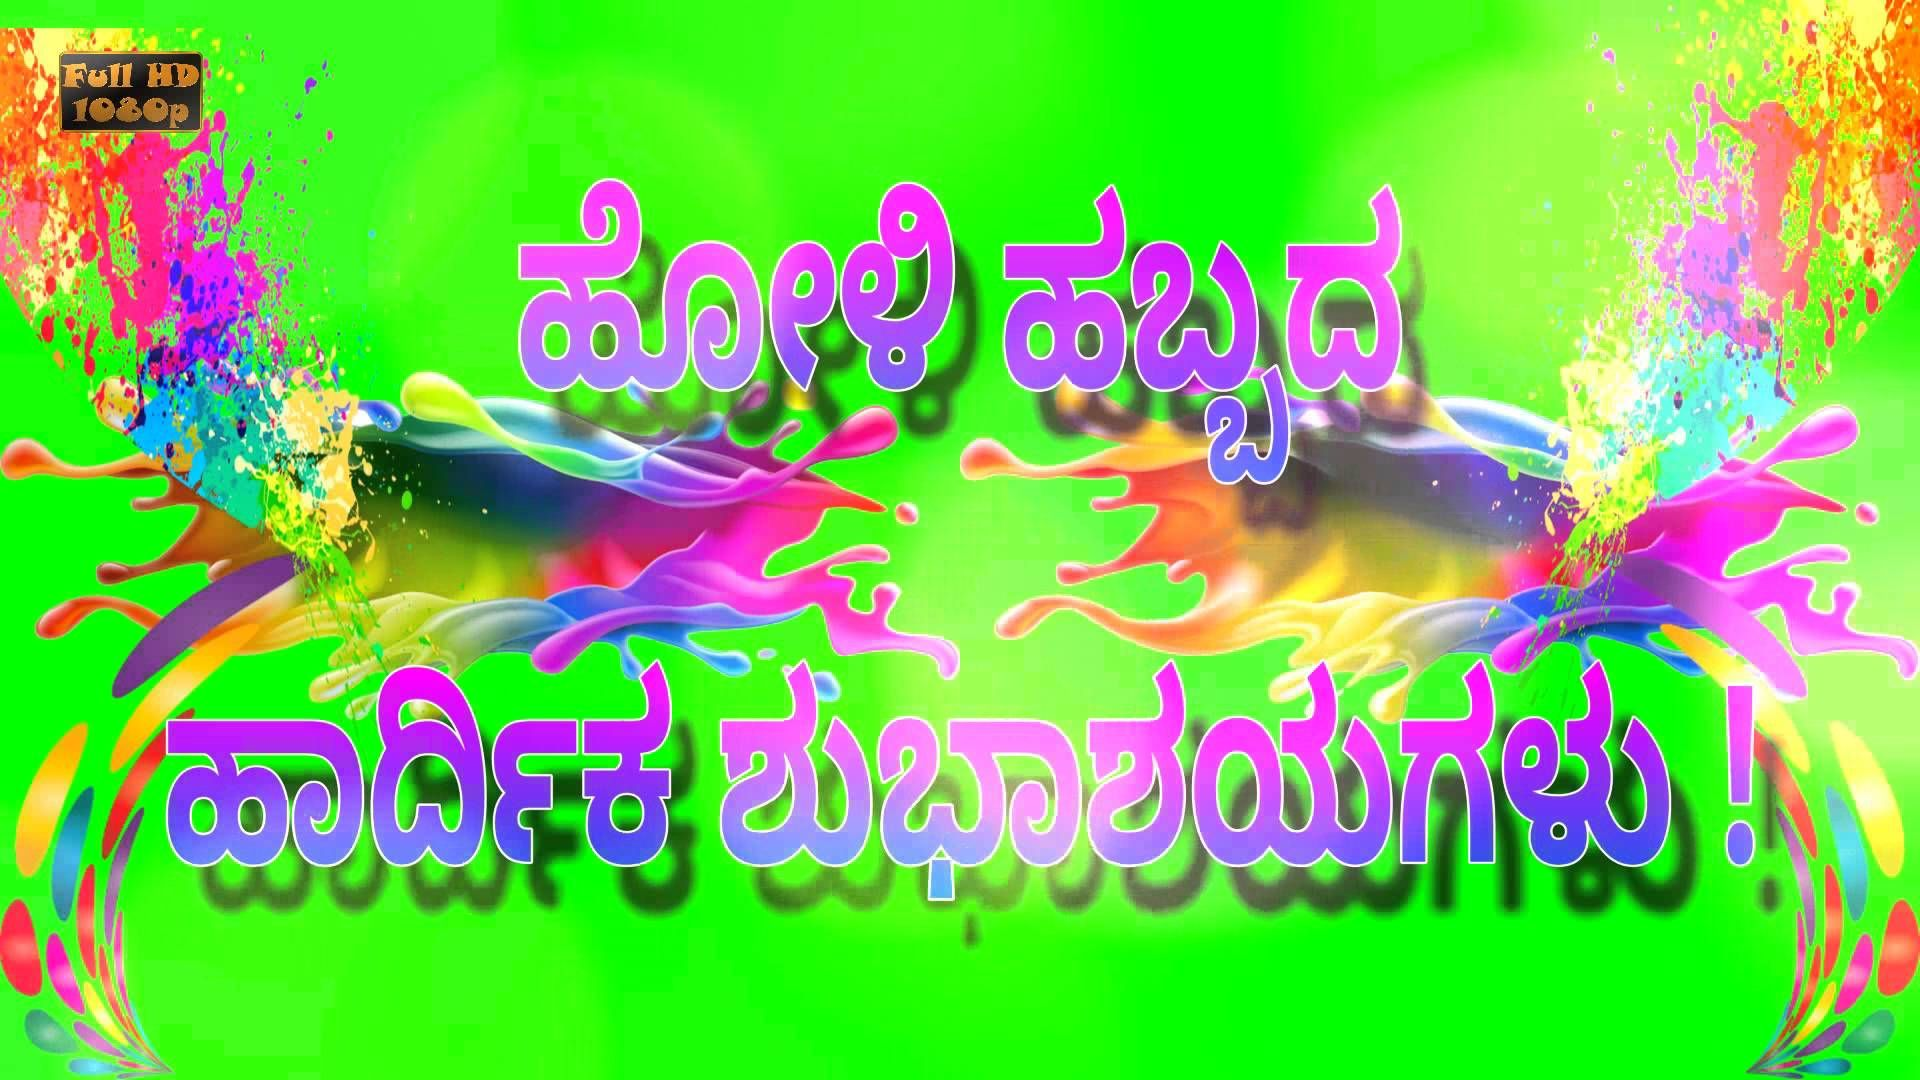 happy holi greetings in kannada holi wishes in kannada holi holi or phagwah is a popular spring festival holi is festival of colours holi commemorates the slaying of the demoness holika by lord vishnu devotee